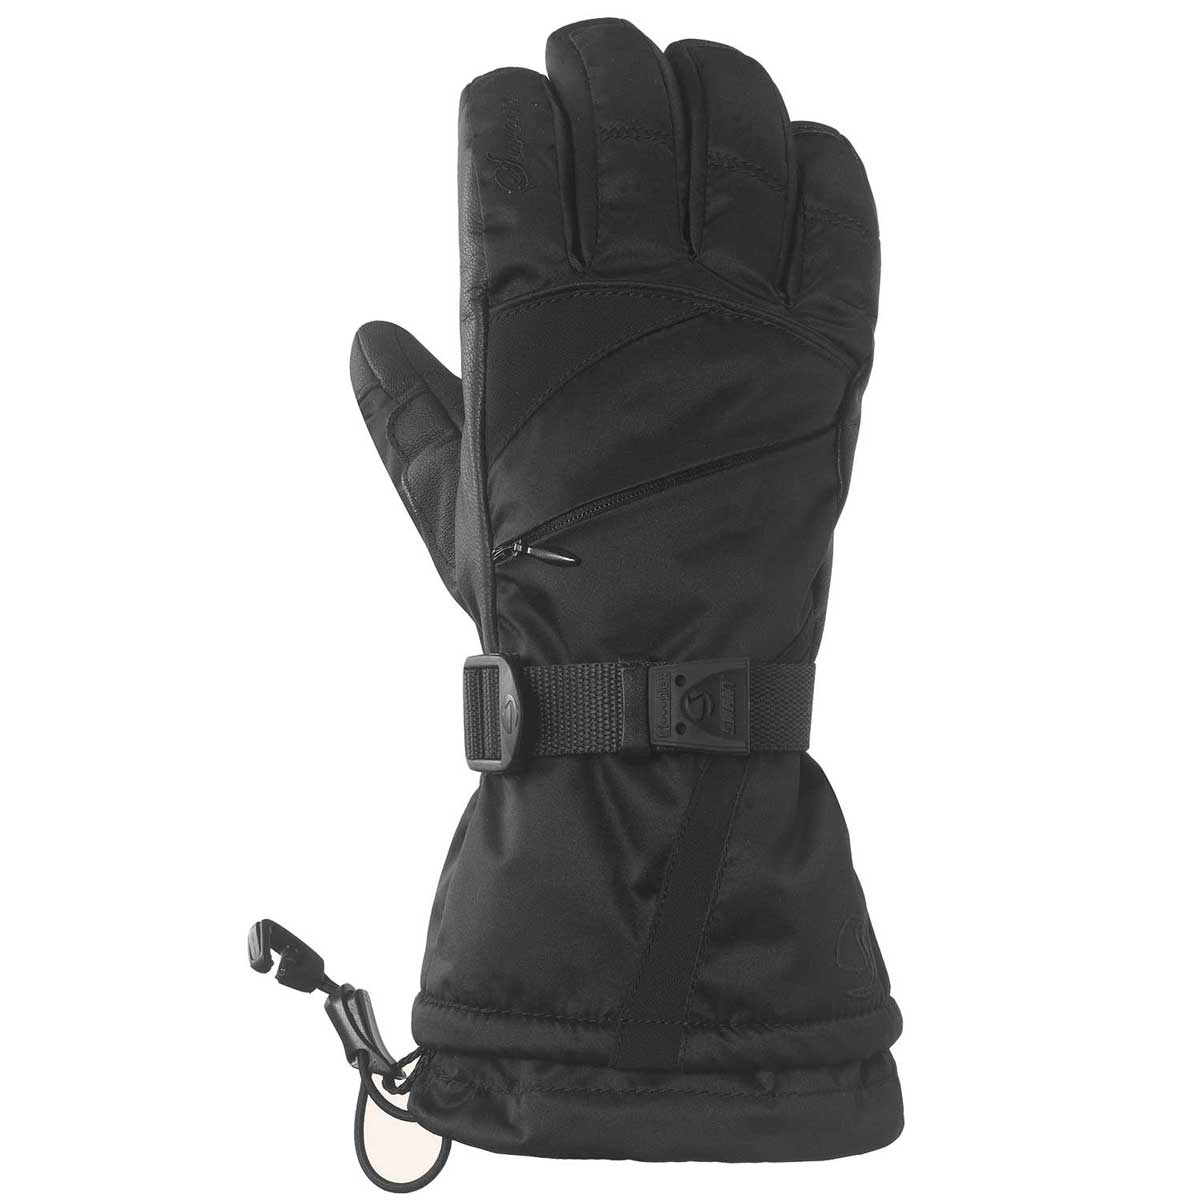 Swany X-Therm glove in black